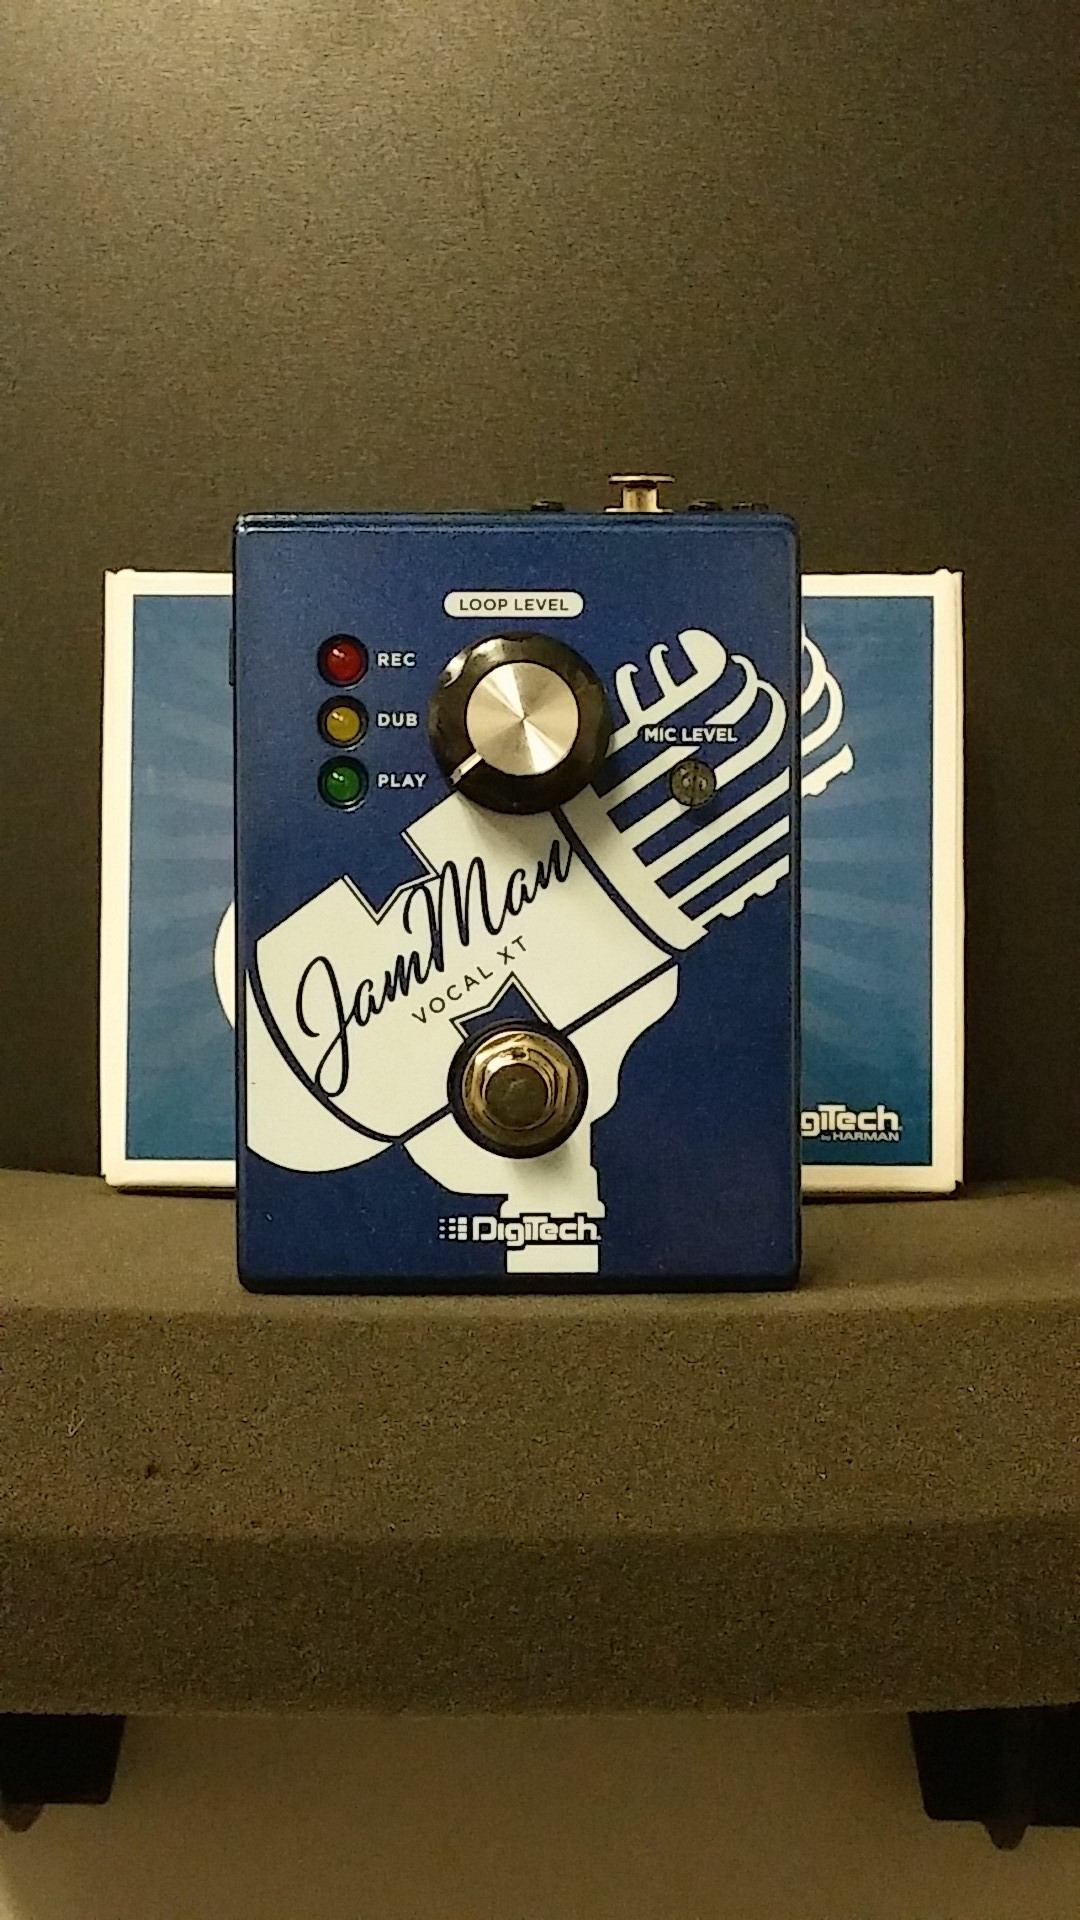 DigiTech - JamMan Vocal XT